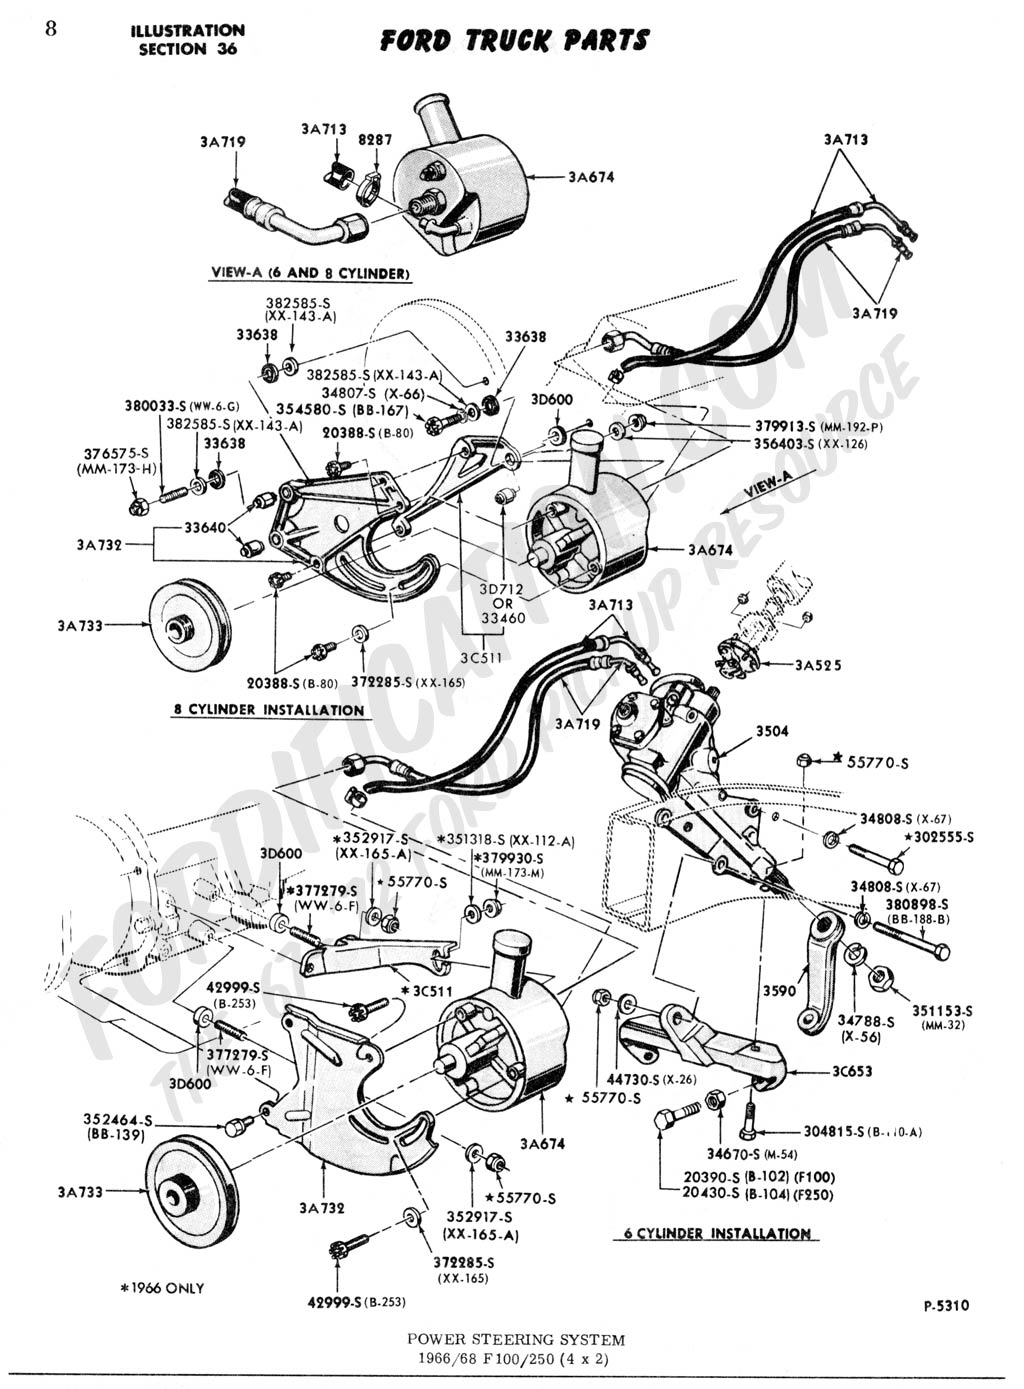 similiar 1967 mustang power steering diagram keywords nova steering column diagram besides ford steering column diagram